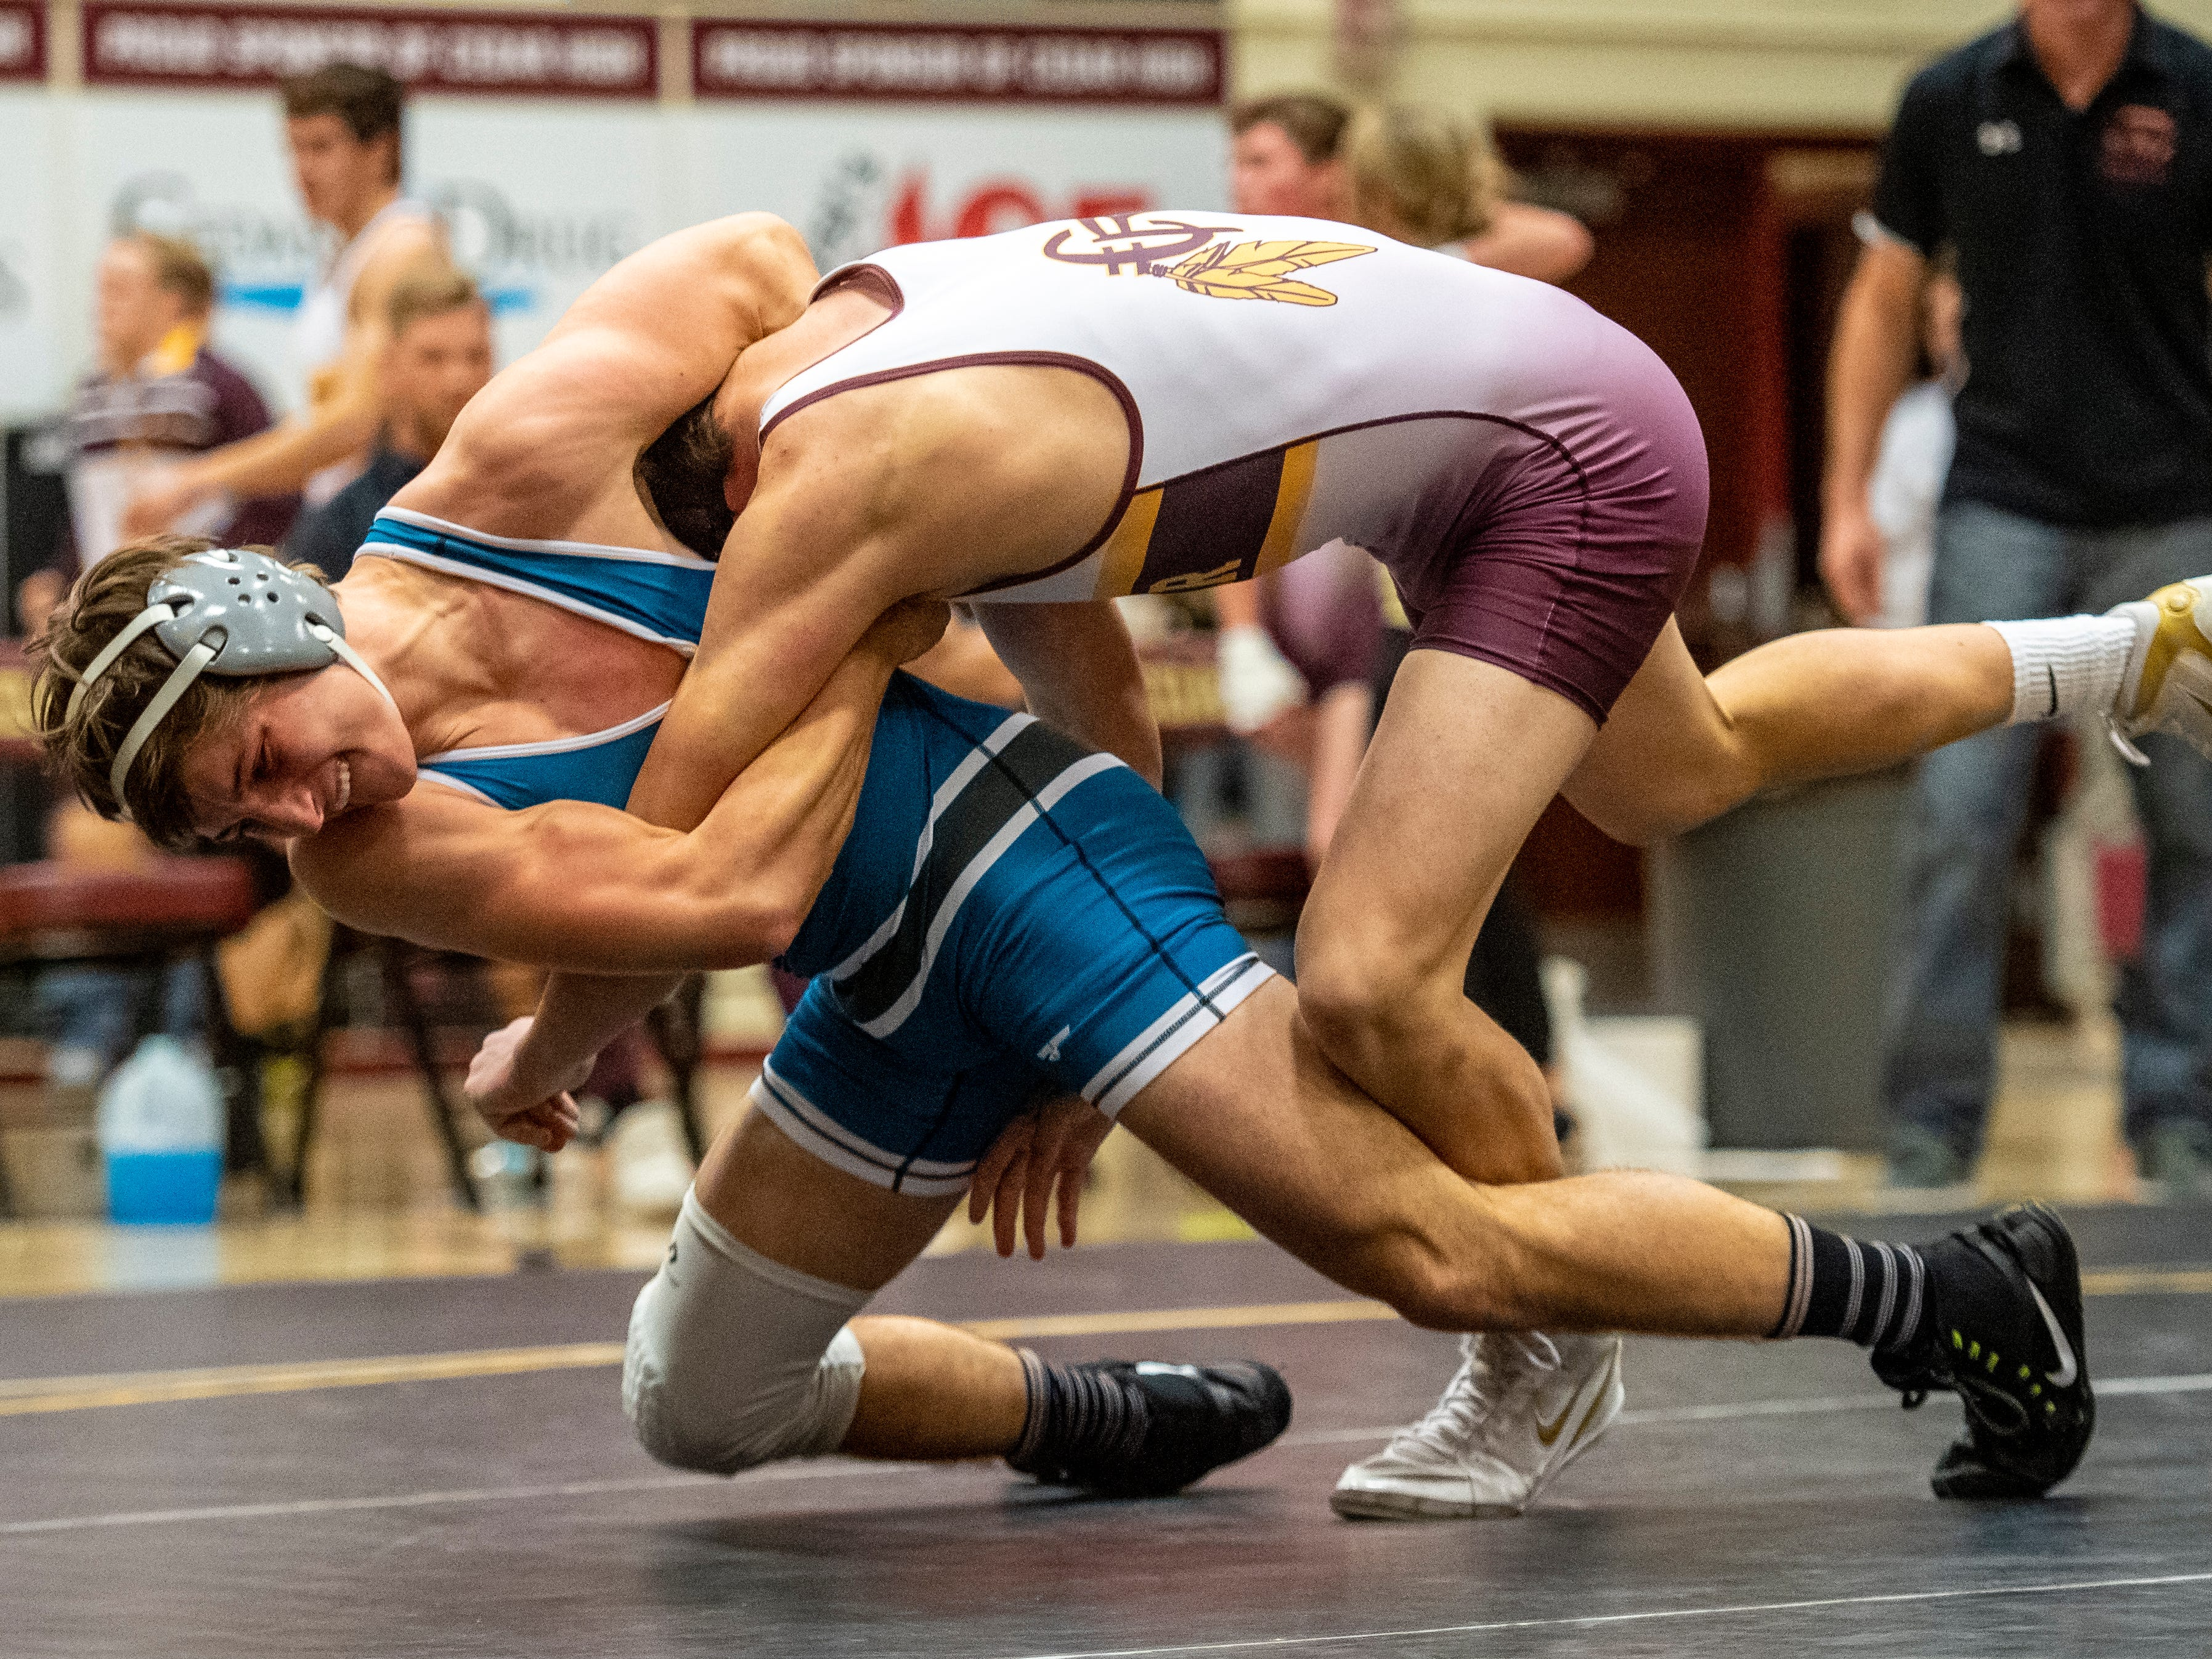 Canyon View High School's Brady Lowry brings his opponent to the mat at Cedar High School Thursday, January 10, 2019. Canyon View won, 45-33.